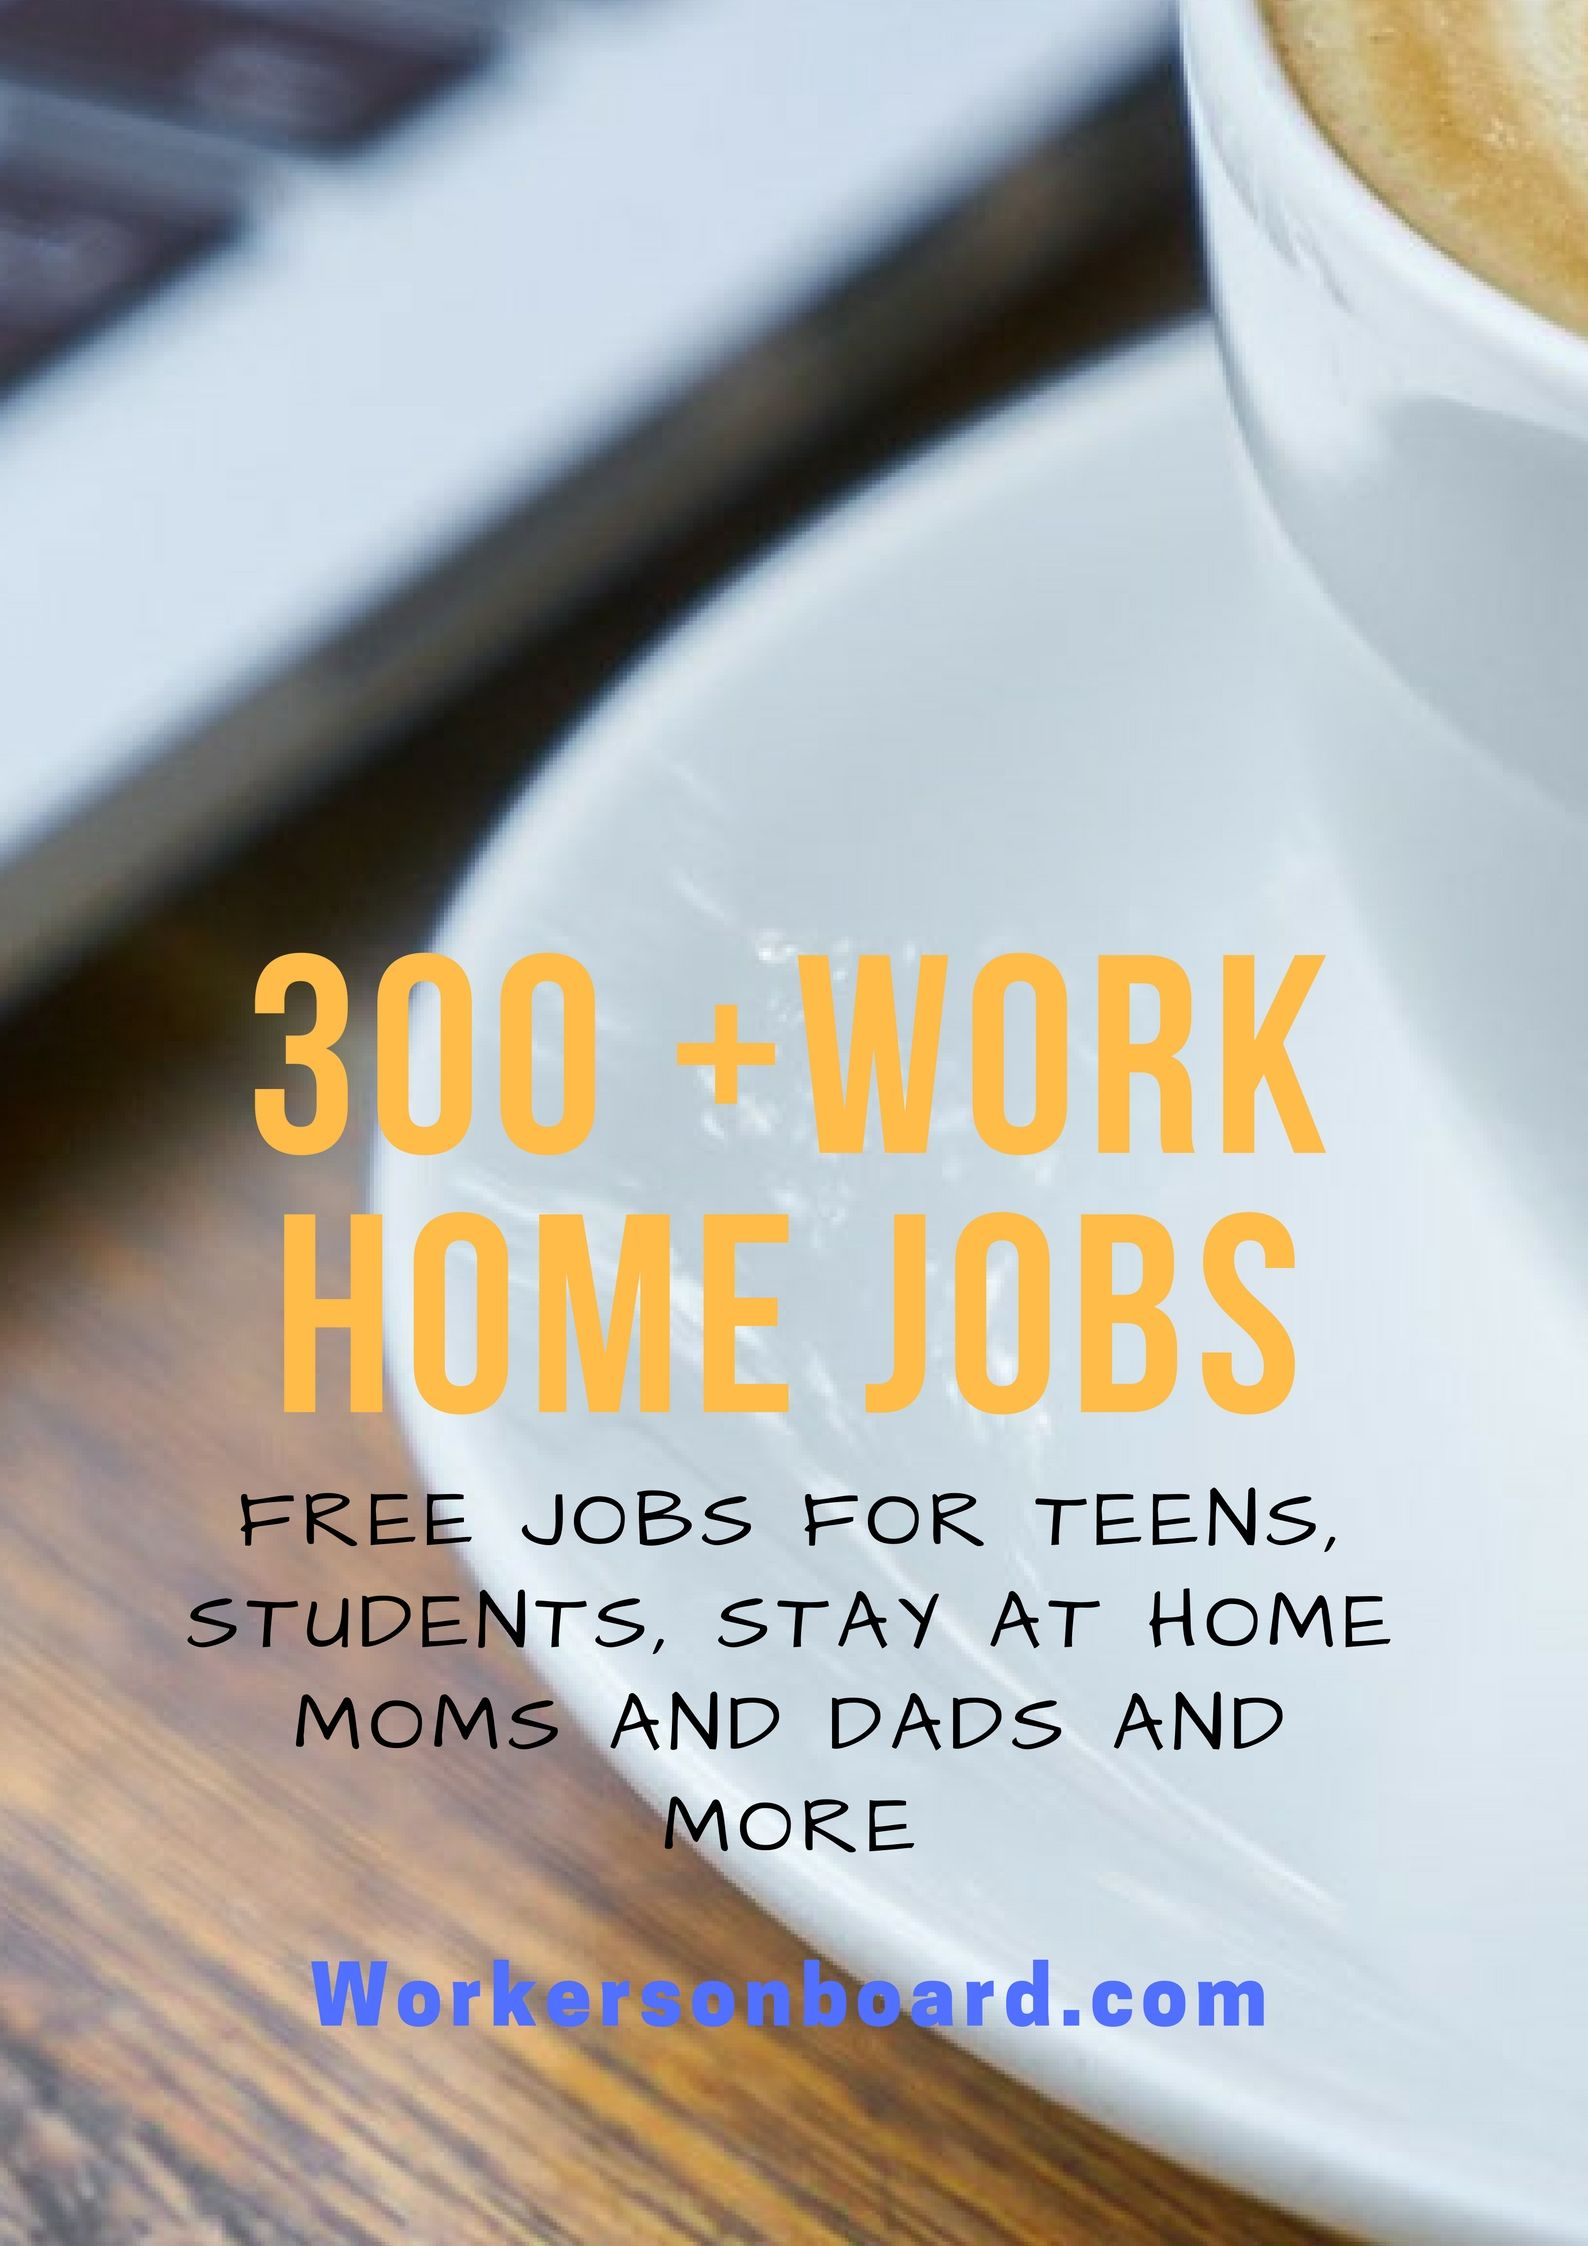 Facebook job offer work from home tips work from home